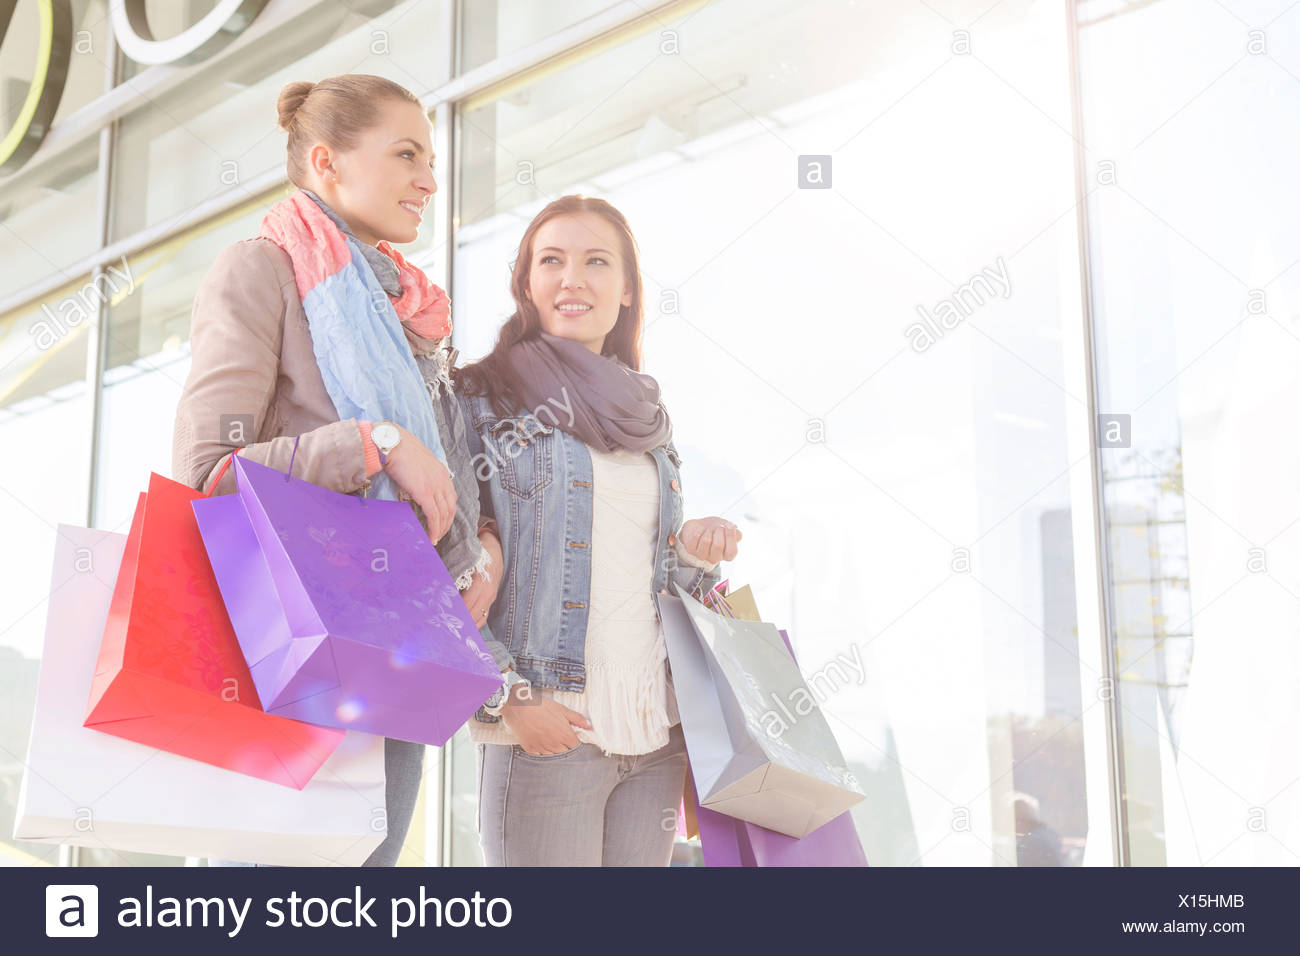 Young women carrying shopping bags by store Stock Photo